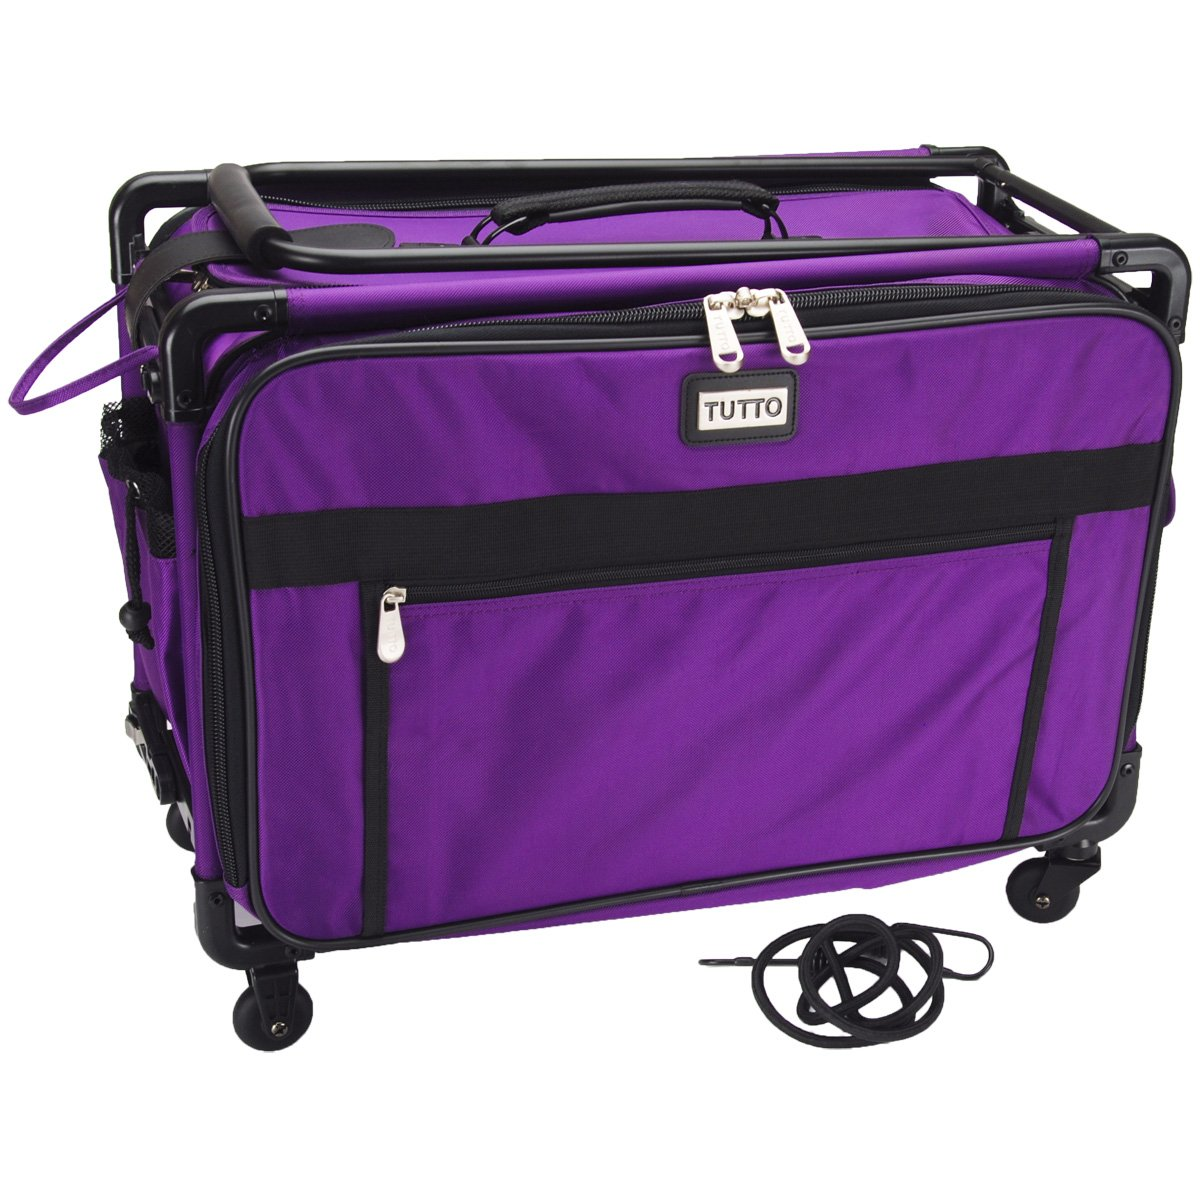 Papermania craft tote - Tutto Craft On Wheels Large Case 22 X15 X12 Purple Amazon Co Uk Kitchen Home